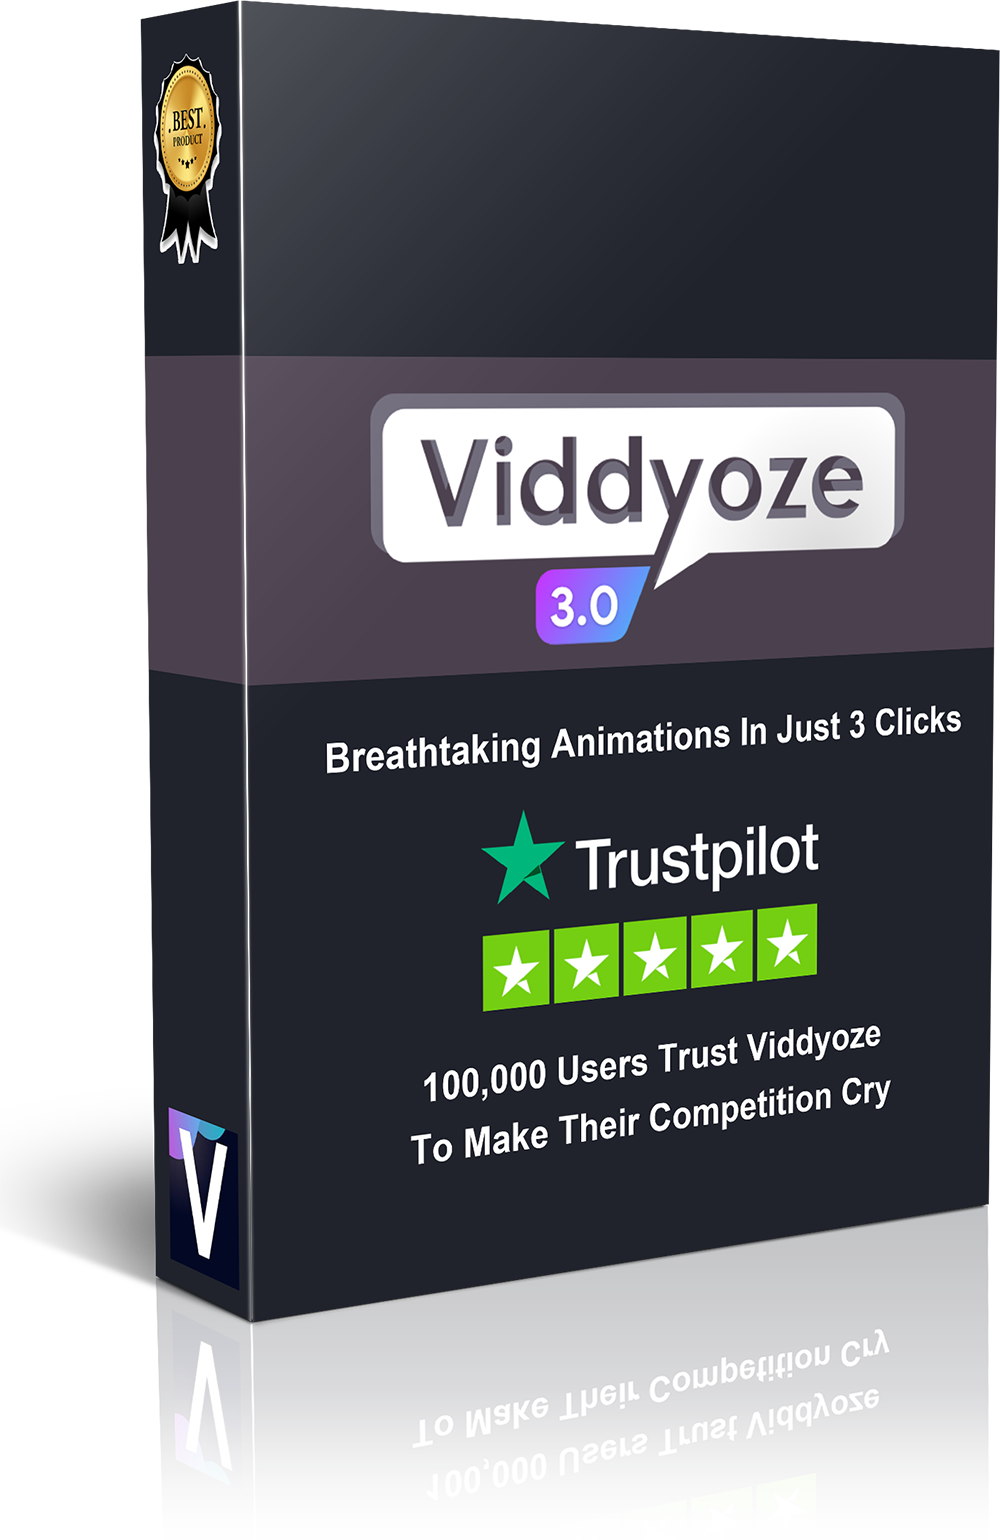 Viddyoze Special Coupon Code Save 50% OFF